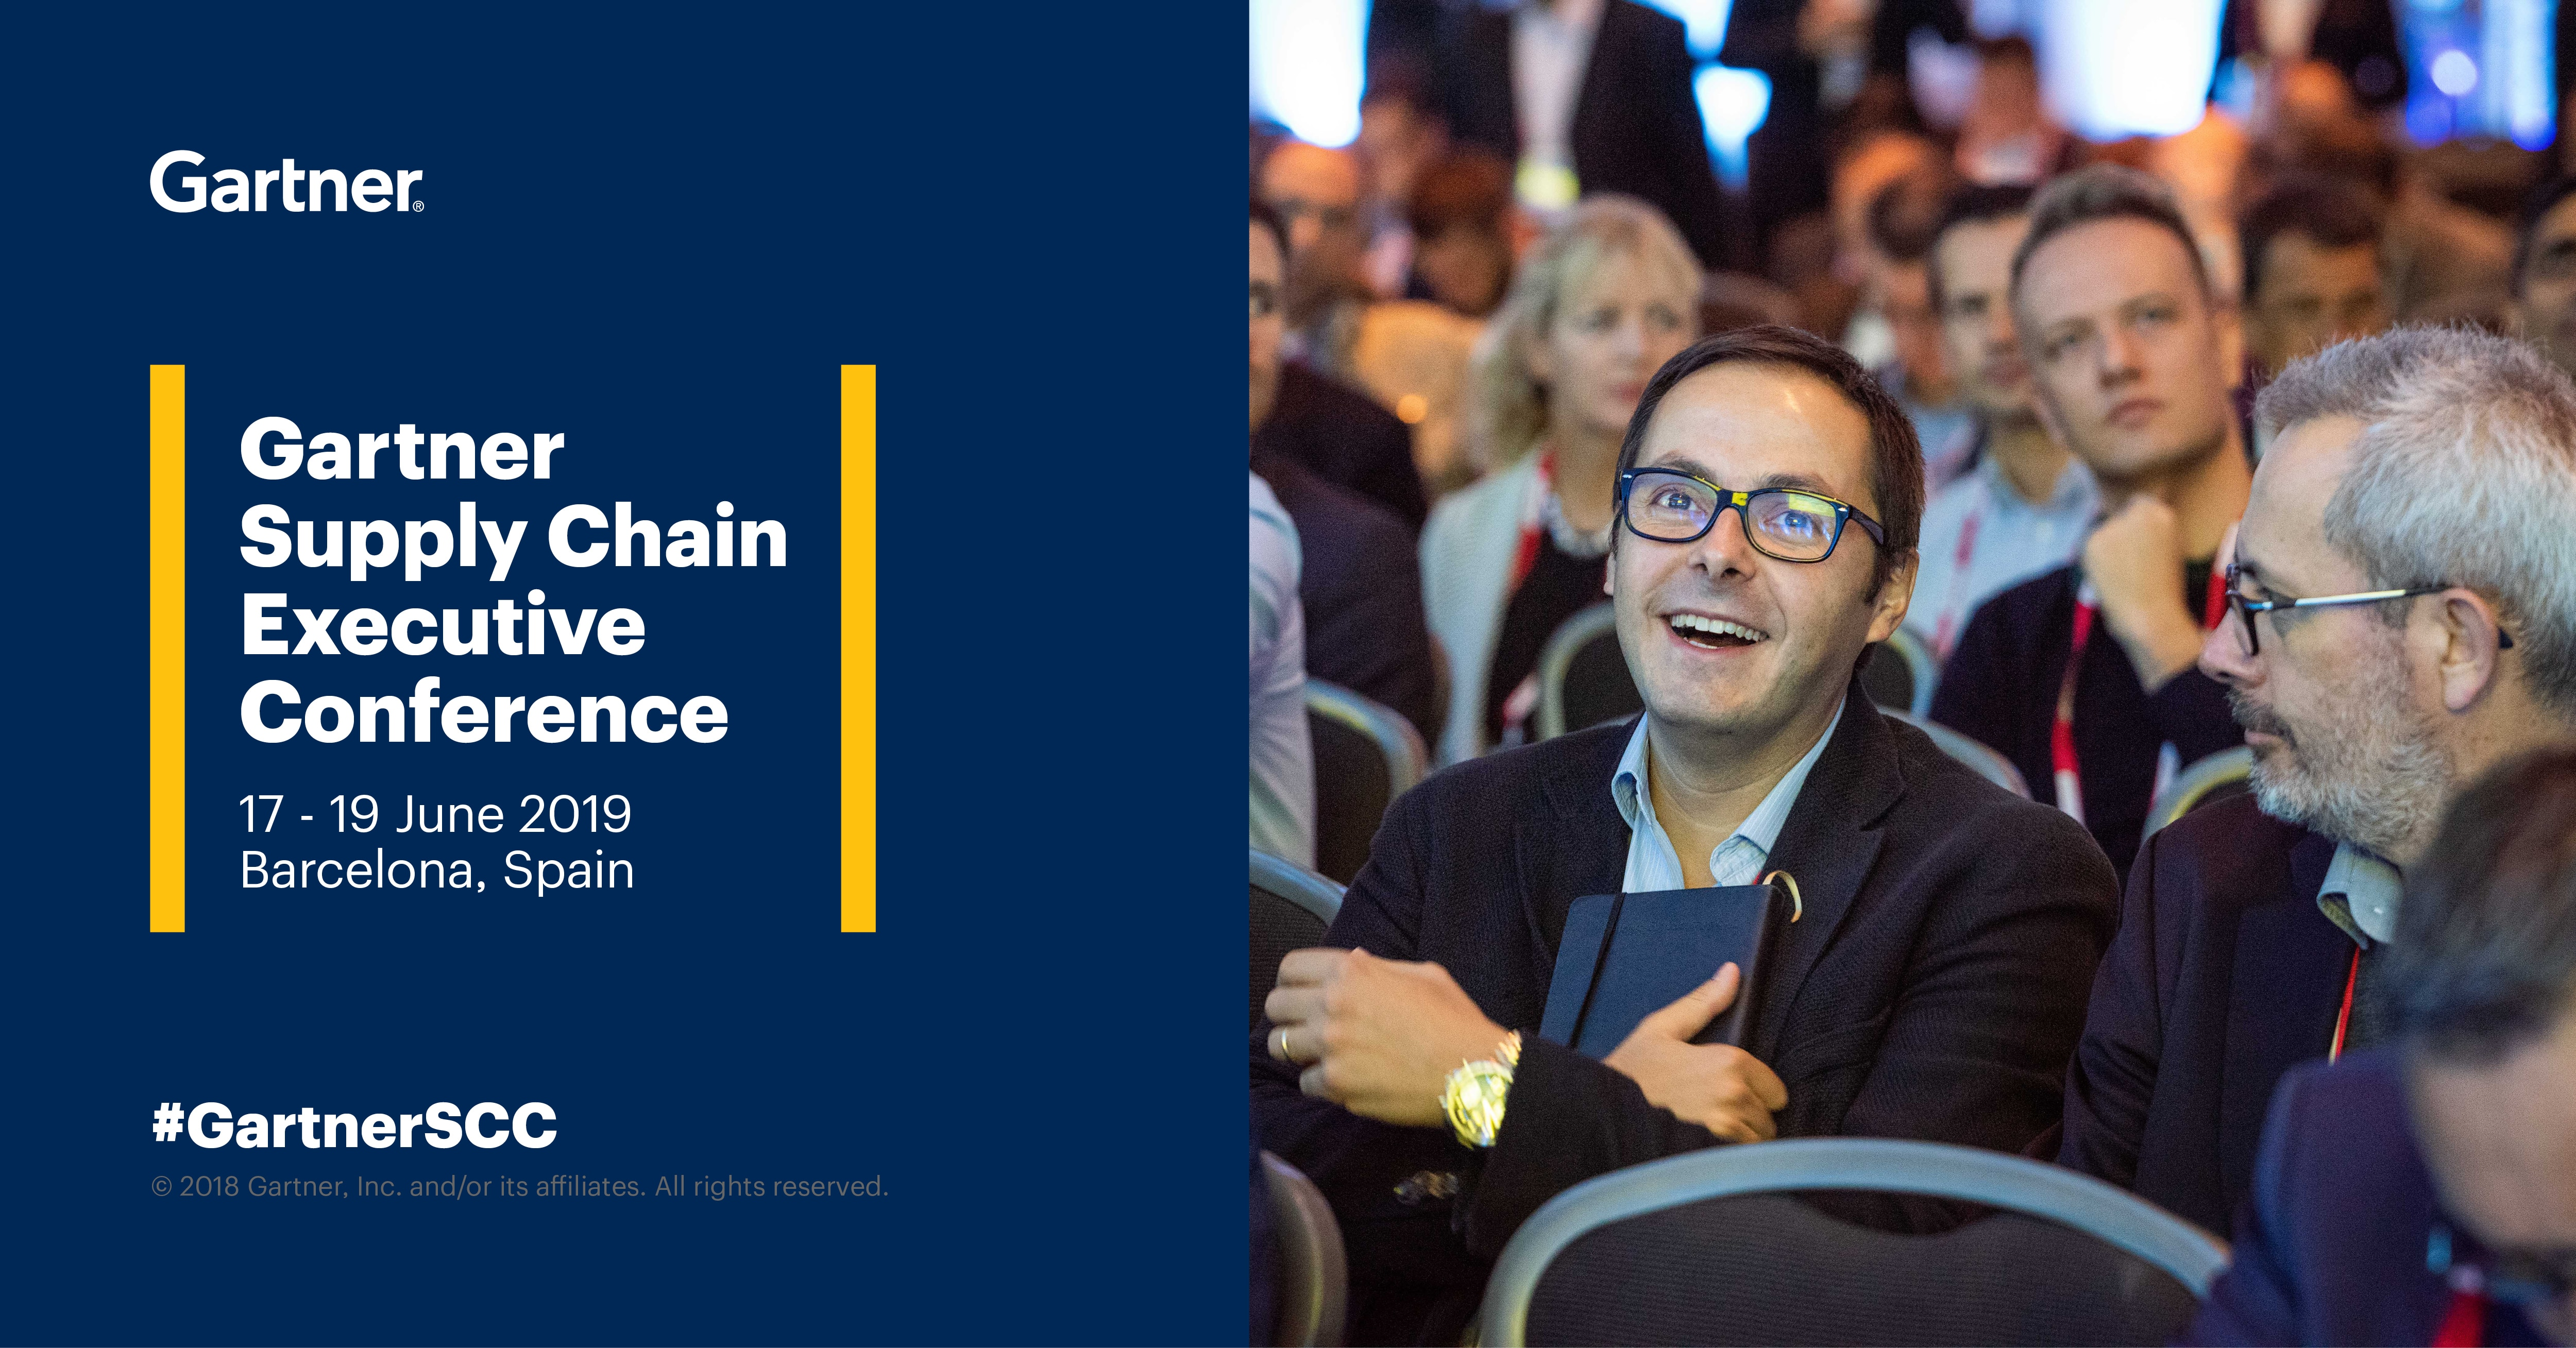 Mecalux participa na Gartner's Supply Chain Executive Conference 2019